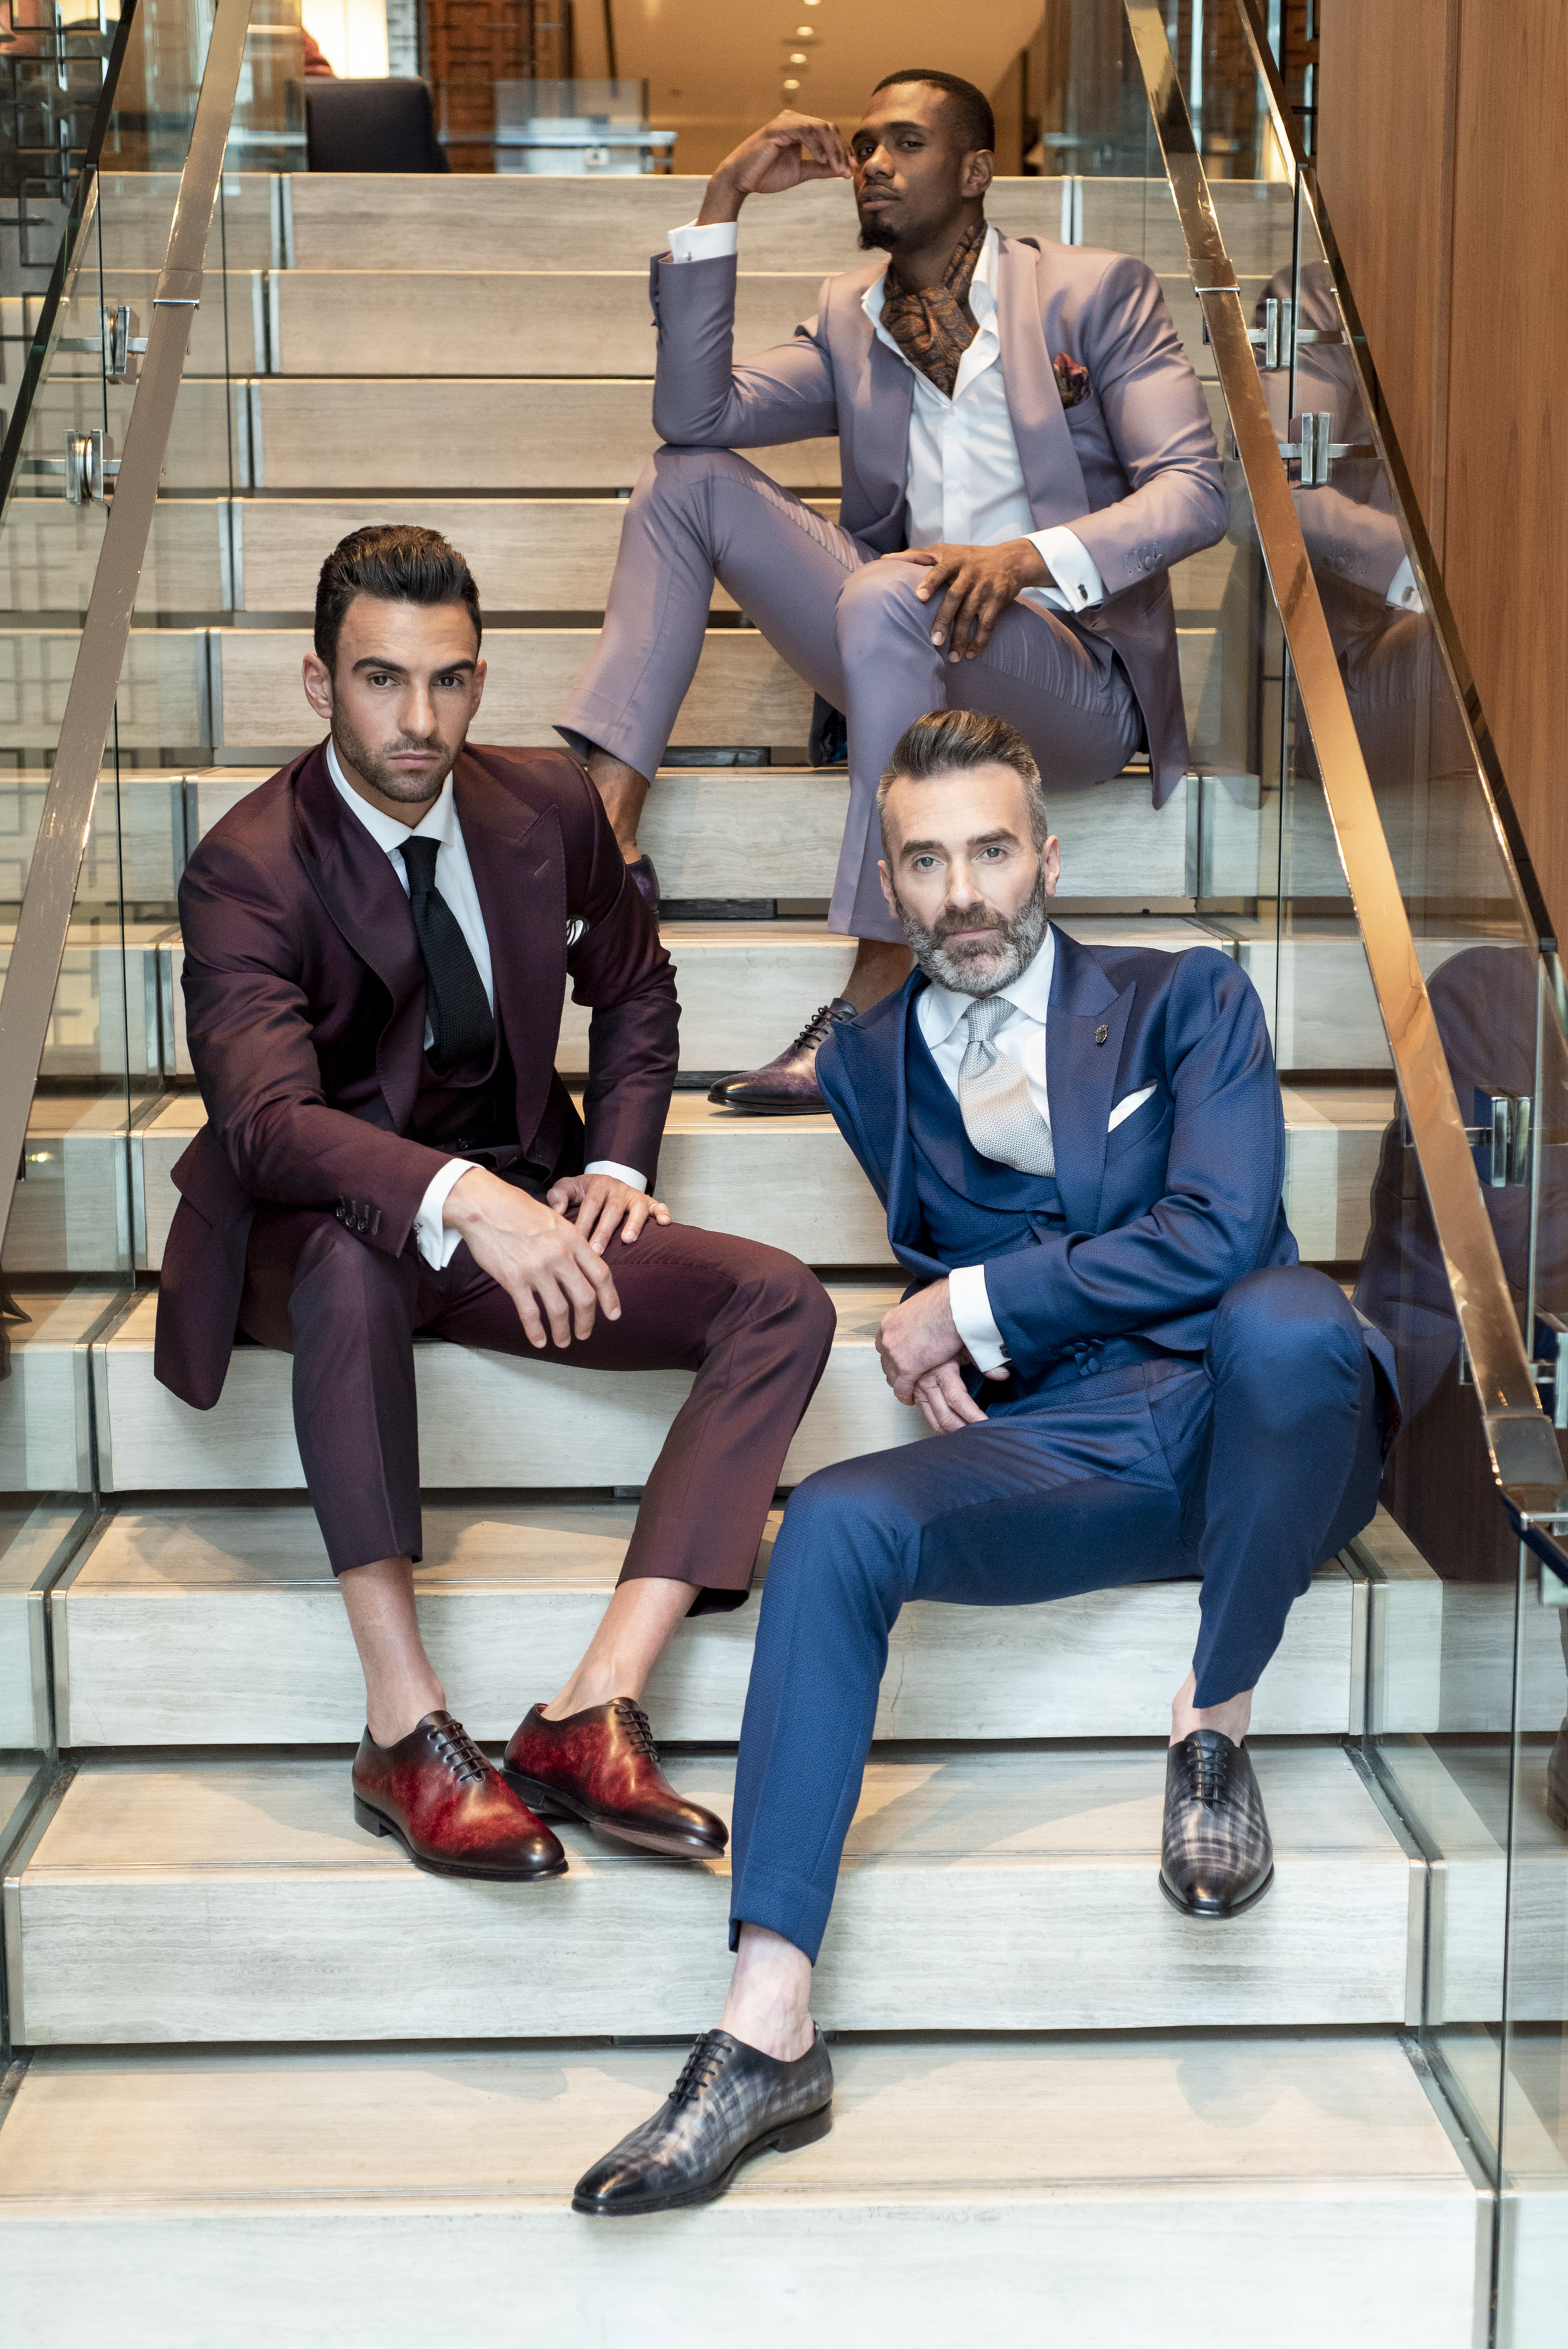 August In Bloom - Grooms group shot - The Suited Groom (The Bridal Affair)